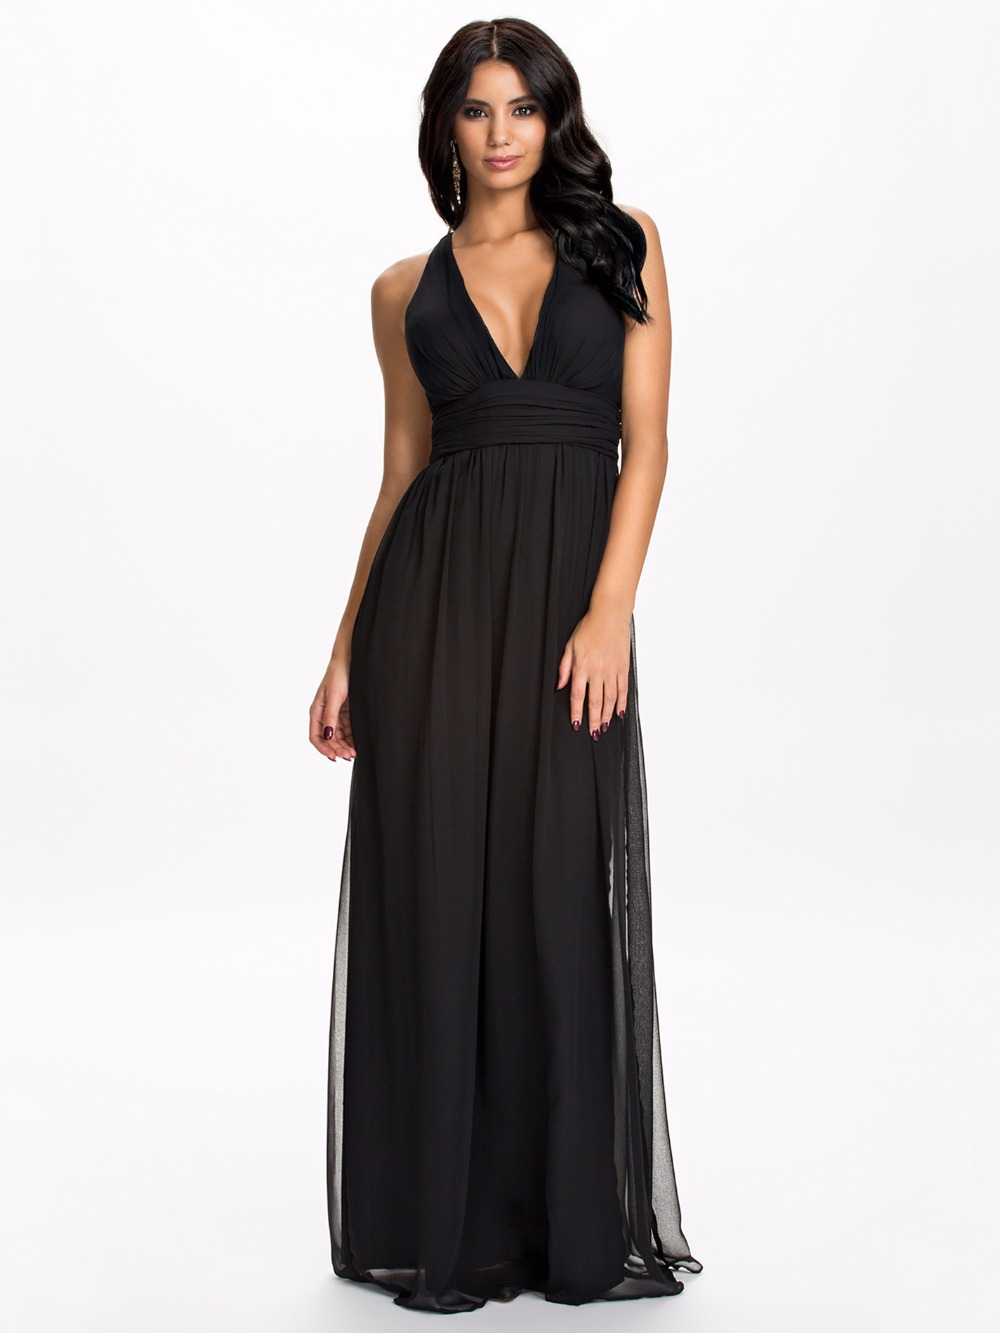 Compare Prices on Strapless Backless Dress- Online Shopping/Buy ...